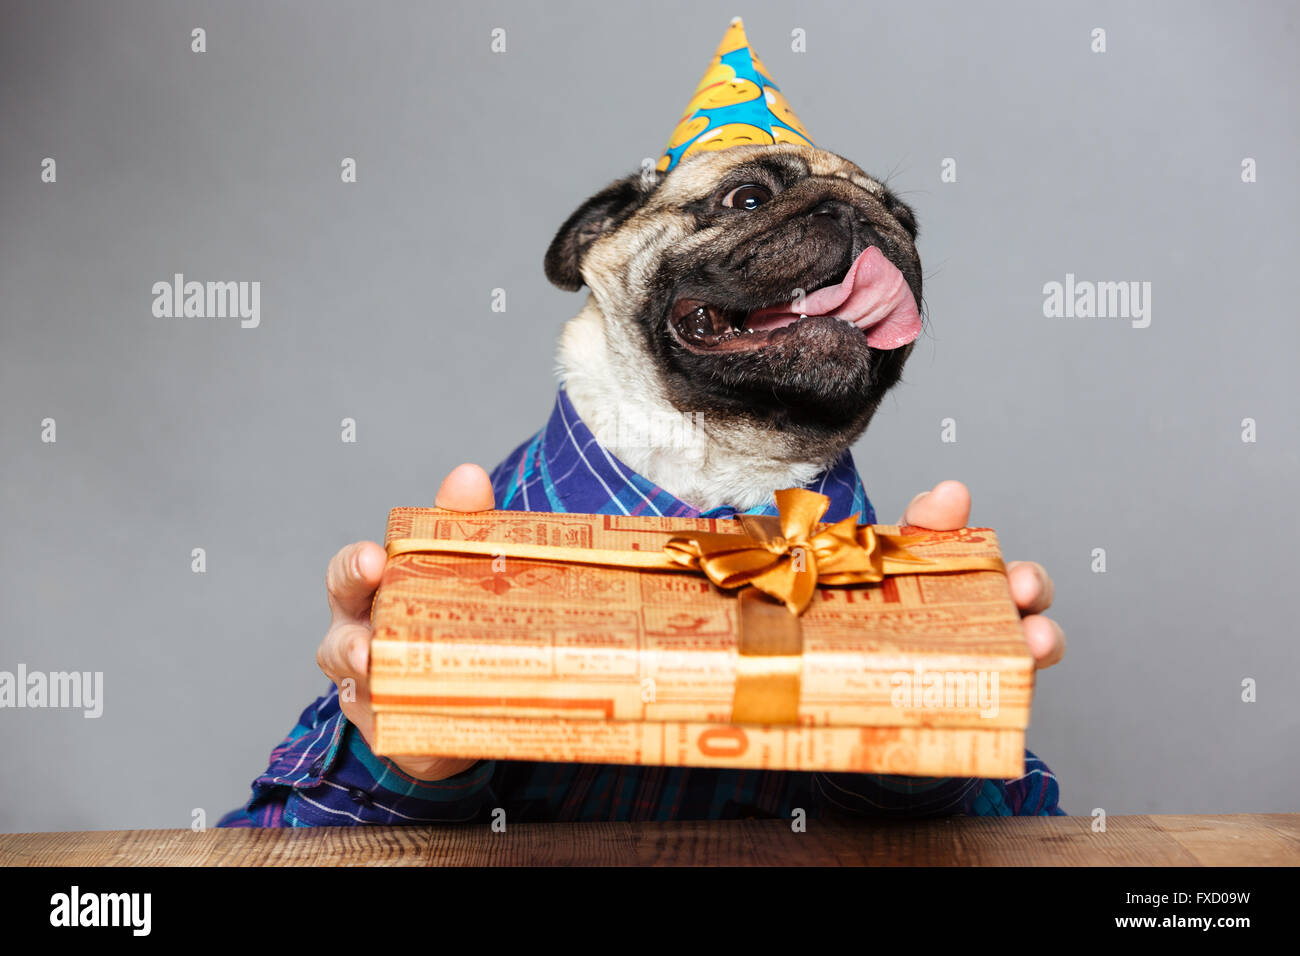 Happy pug dog with man hands in checkered shirt and birthday hat holding present box grey background - Stock Image